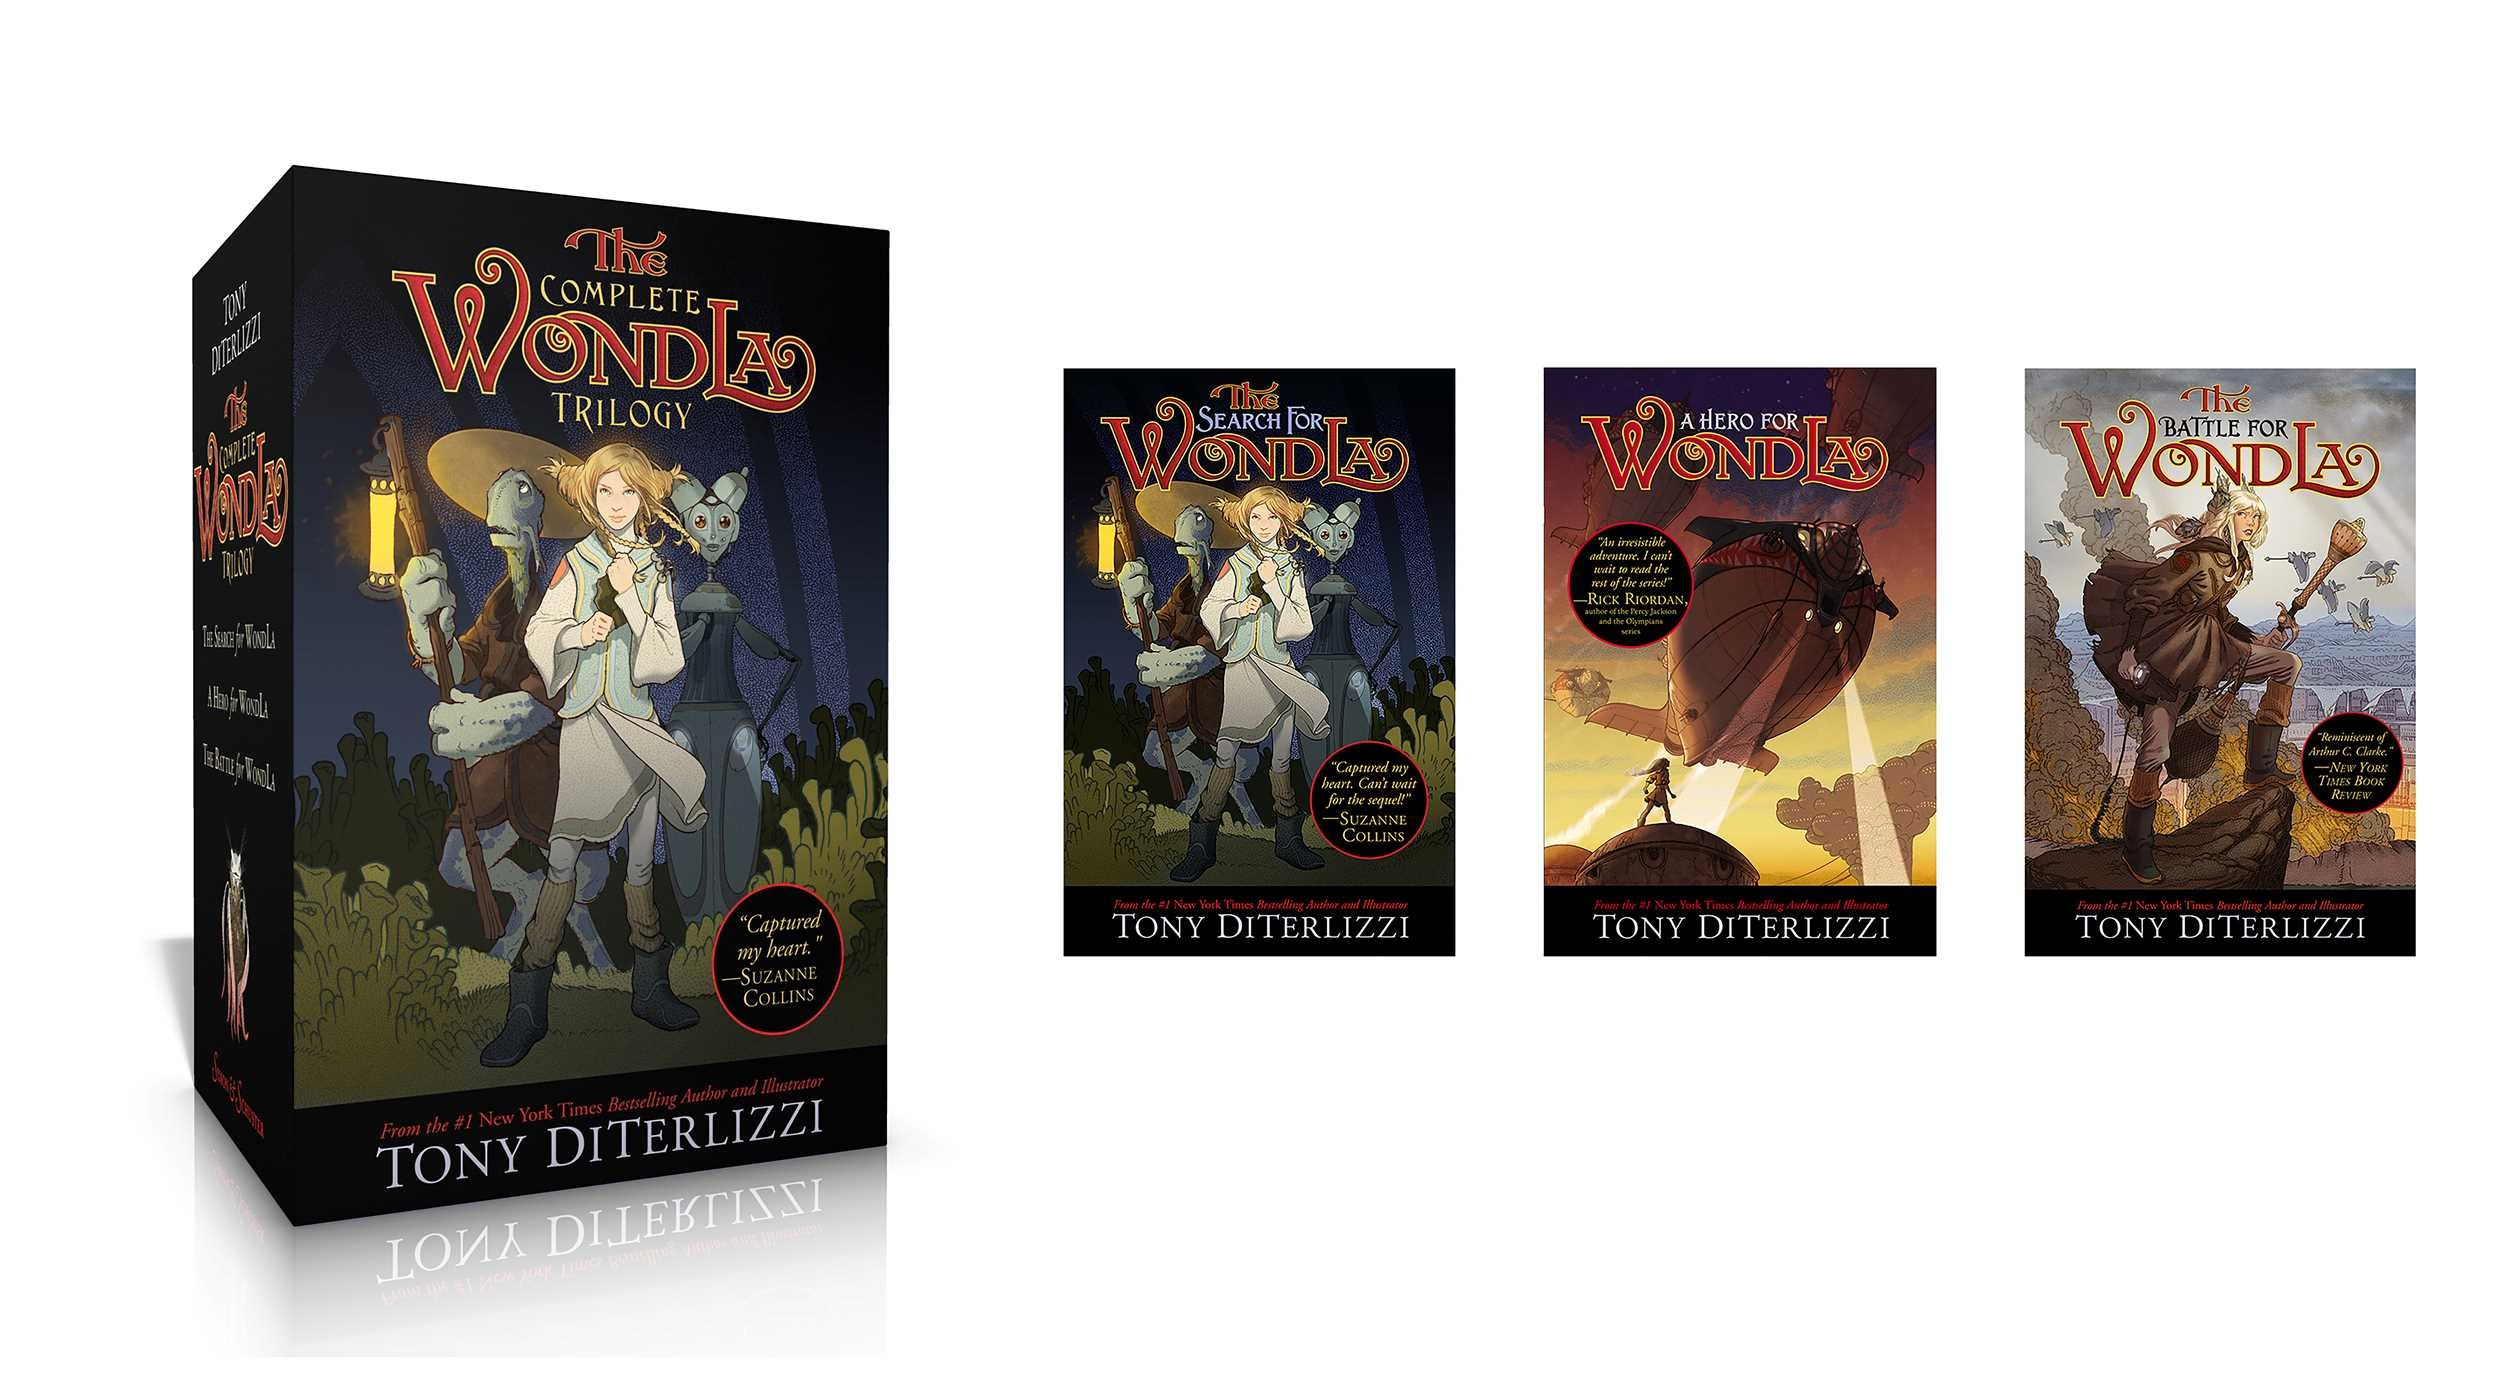 The complete wondla trilogy 9781481499774.in01